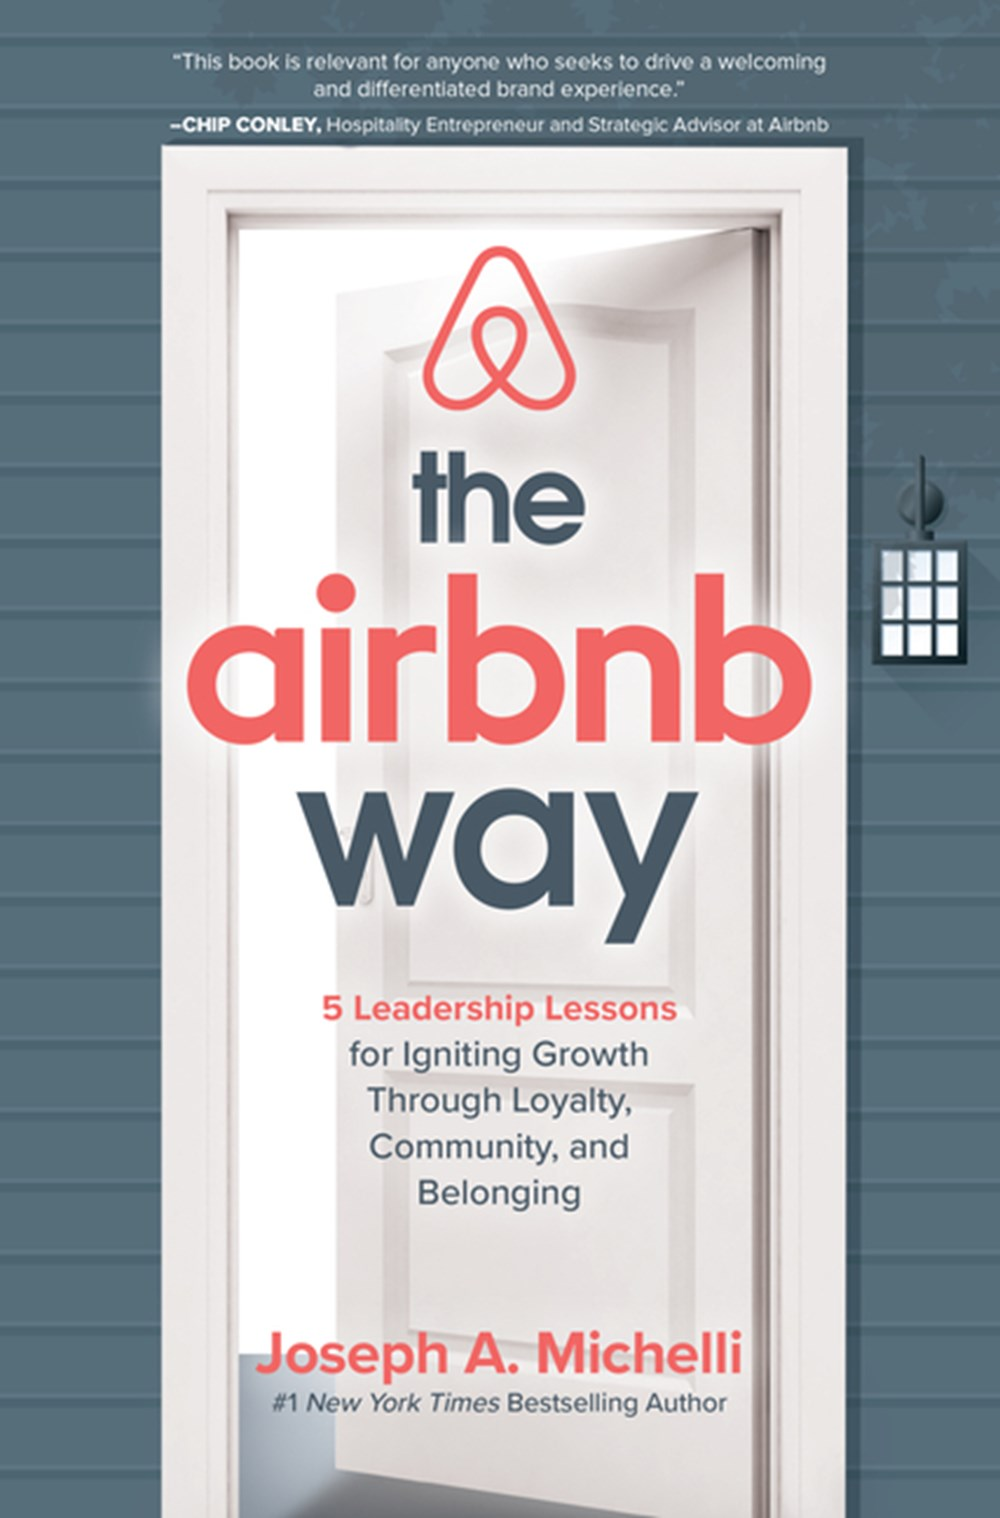 Airbnb Way 5 Leadership Lessons for Igniting Growth Through Loyalty, Community, and Belonging